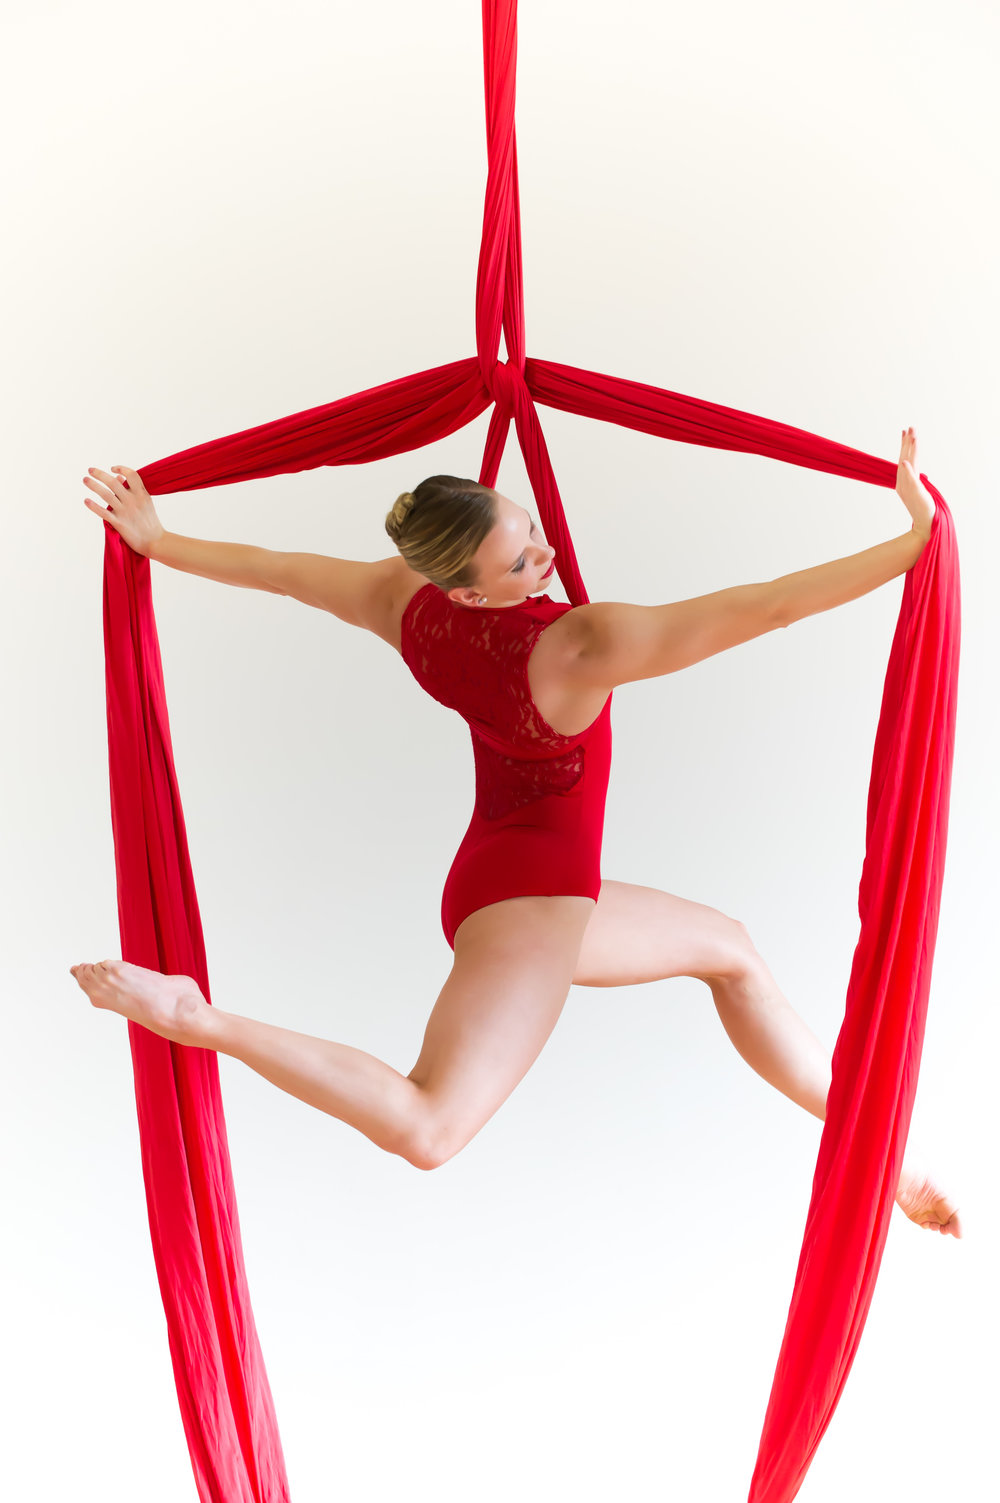 AUTUMN TERM   The School of Aerial Dance Chicago offers programs for youth, teens and adults, beginner through professional. Registration is now open!   Learn More